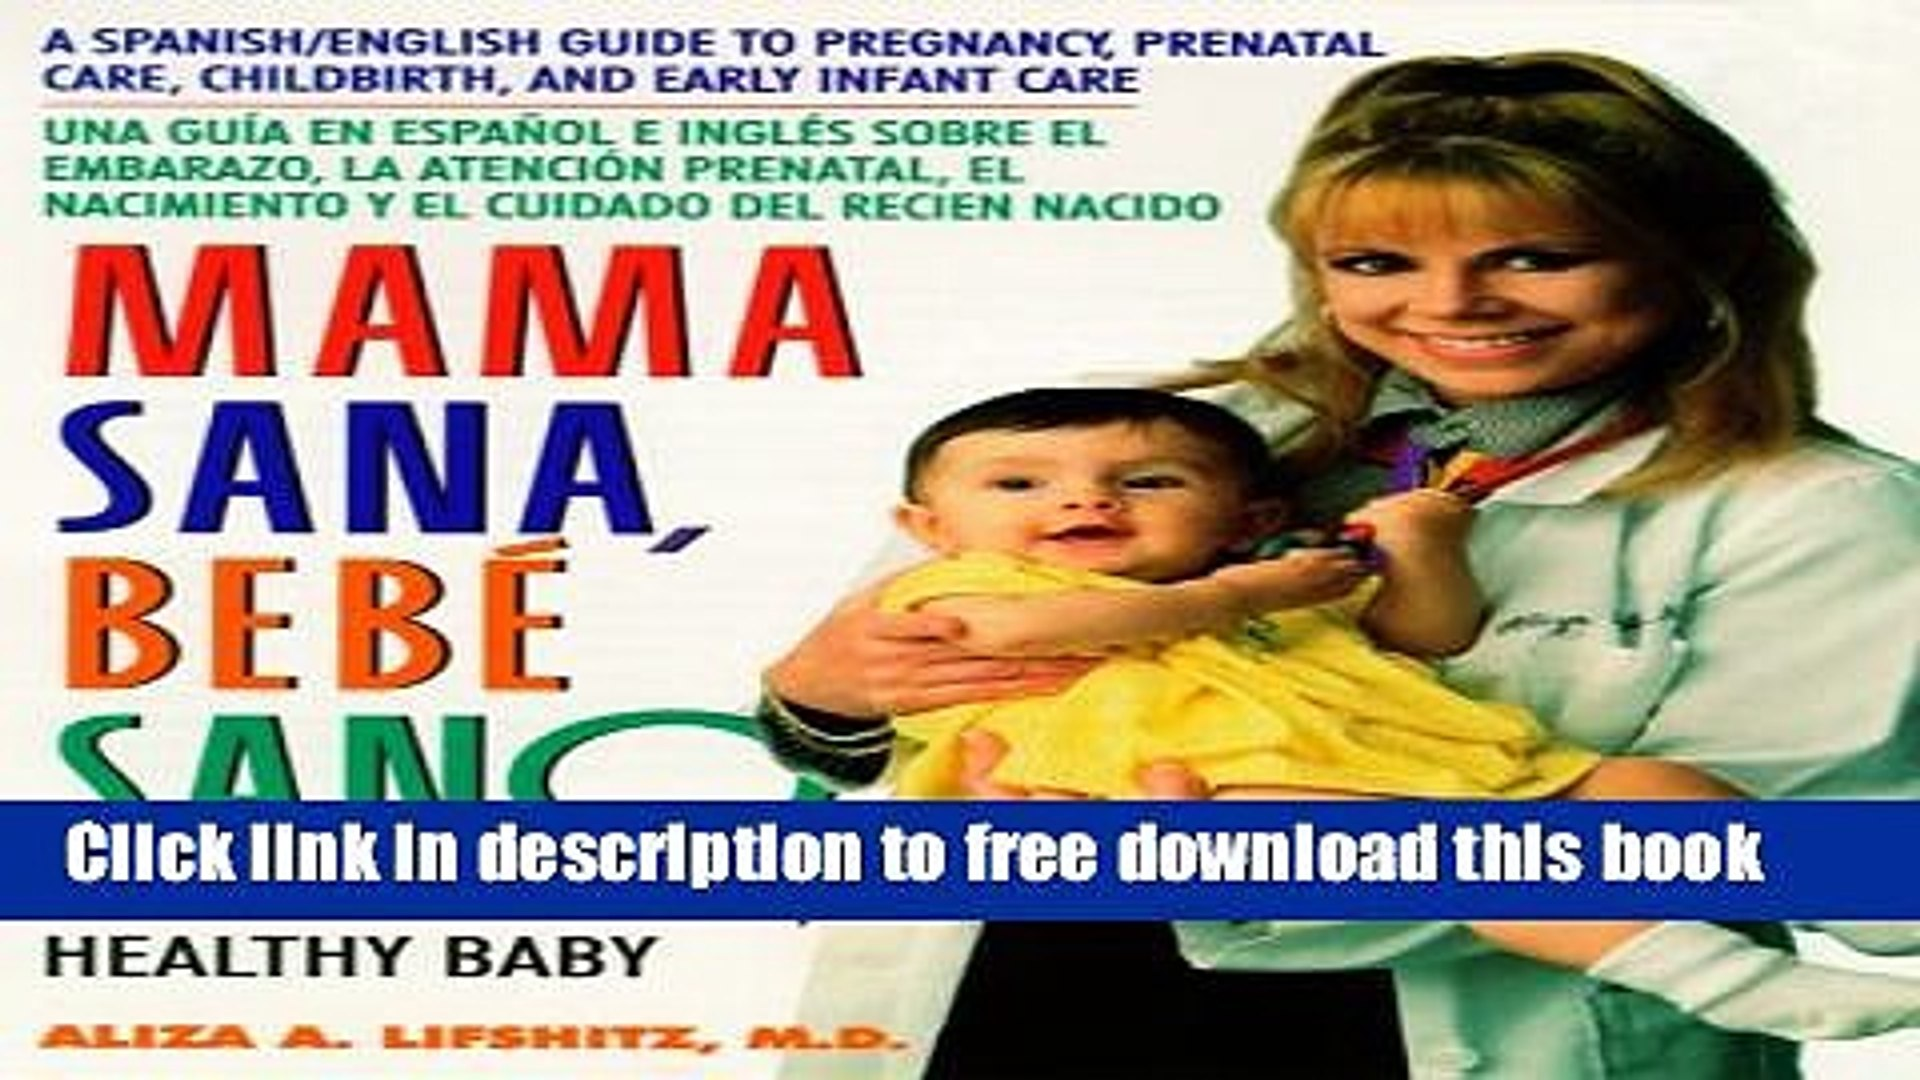 [Download] Mama Sana, Bebe Sano: Healthy Mother, Healthy Baby Hardcover Free